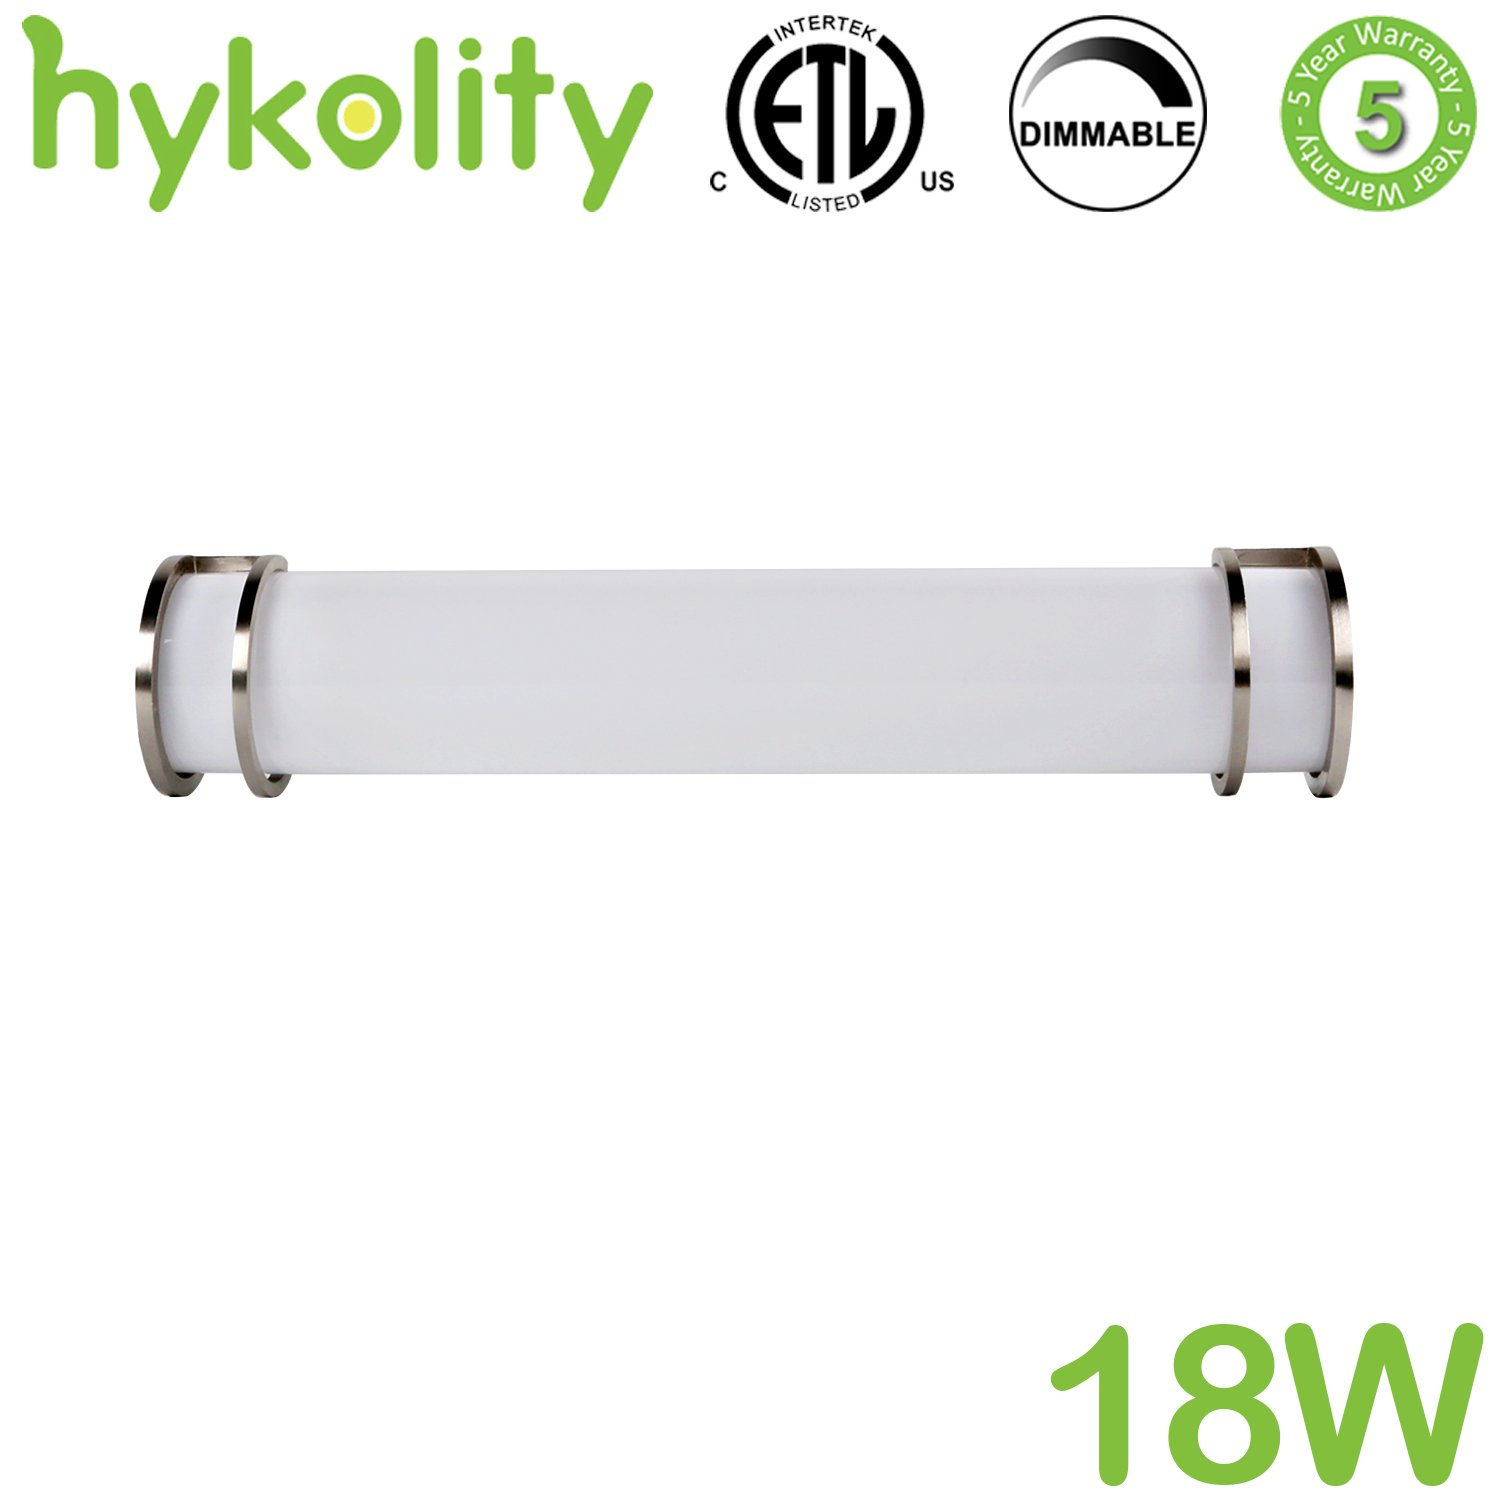 Hykolity 24 inch 18W Integrated LED Linear Vanity Light Bar, Bathroom Wall Sconce Lighting Fixture Brush Nickel Dimmable (Equal to Three 40-watt Incandescent Bulbs) ETL Listed